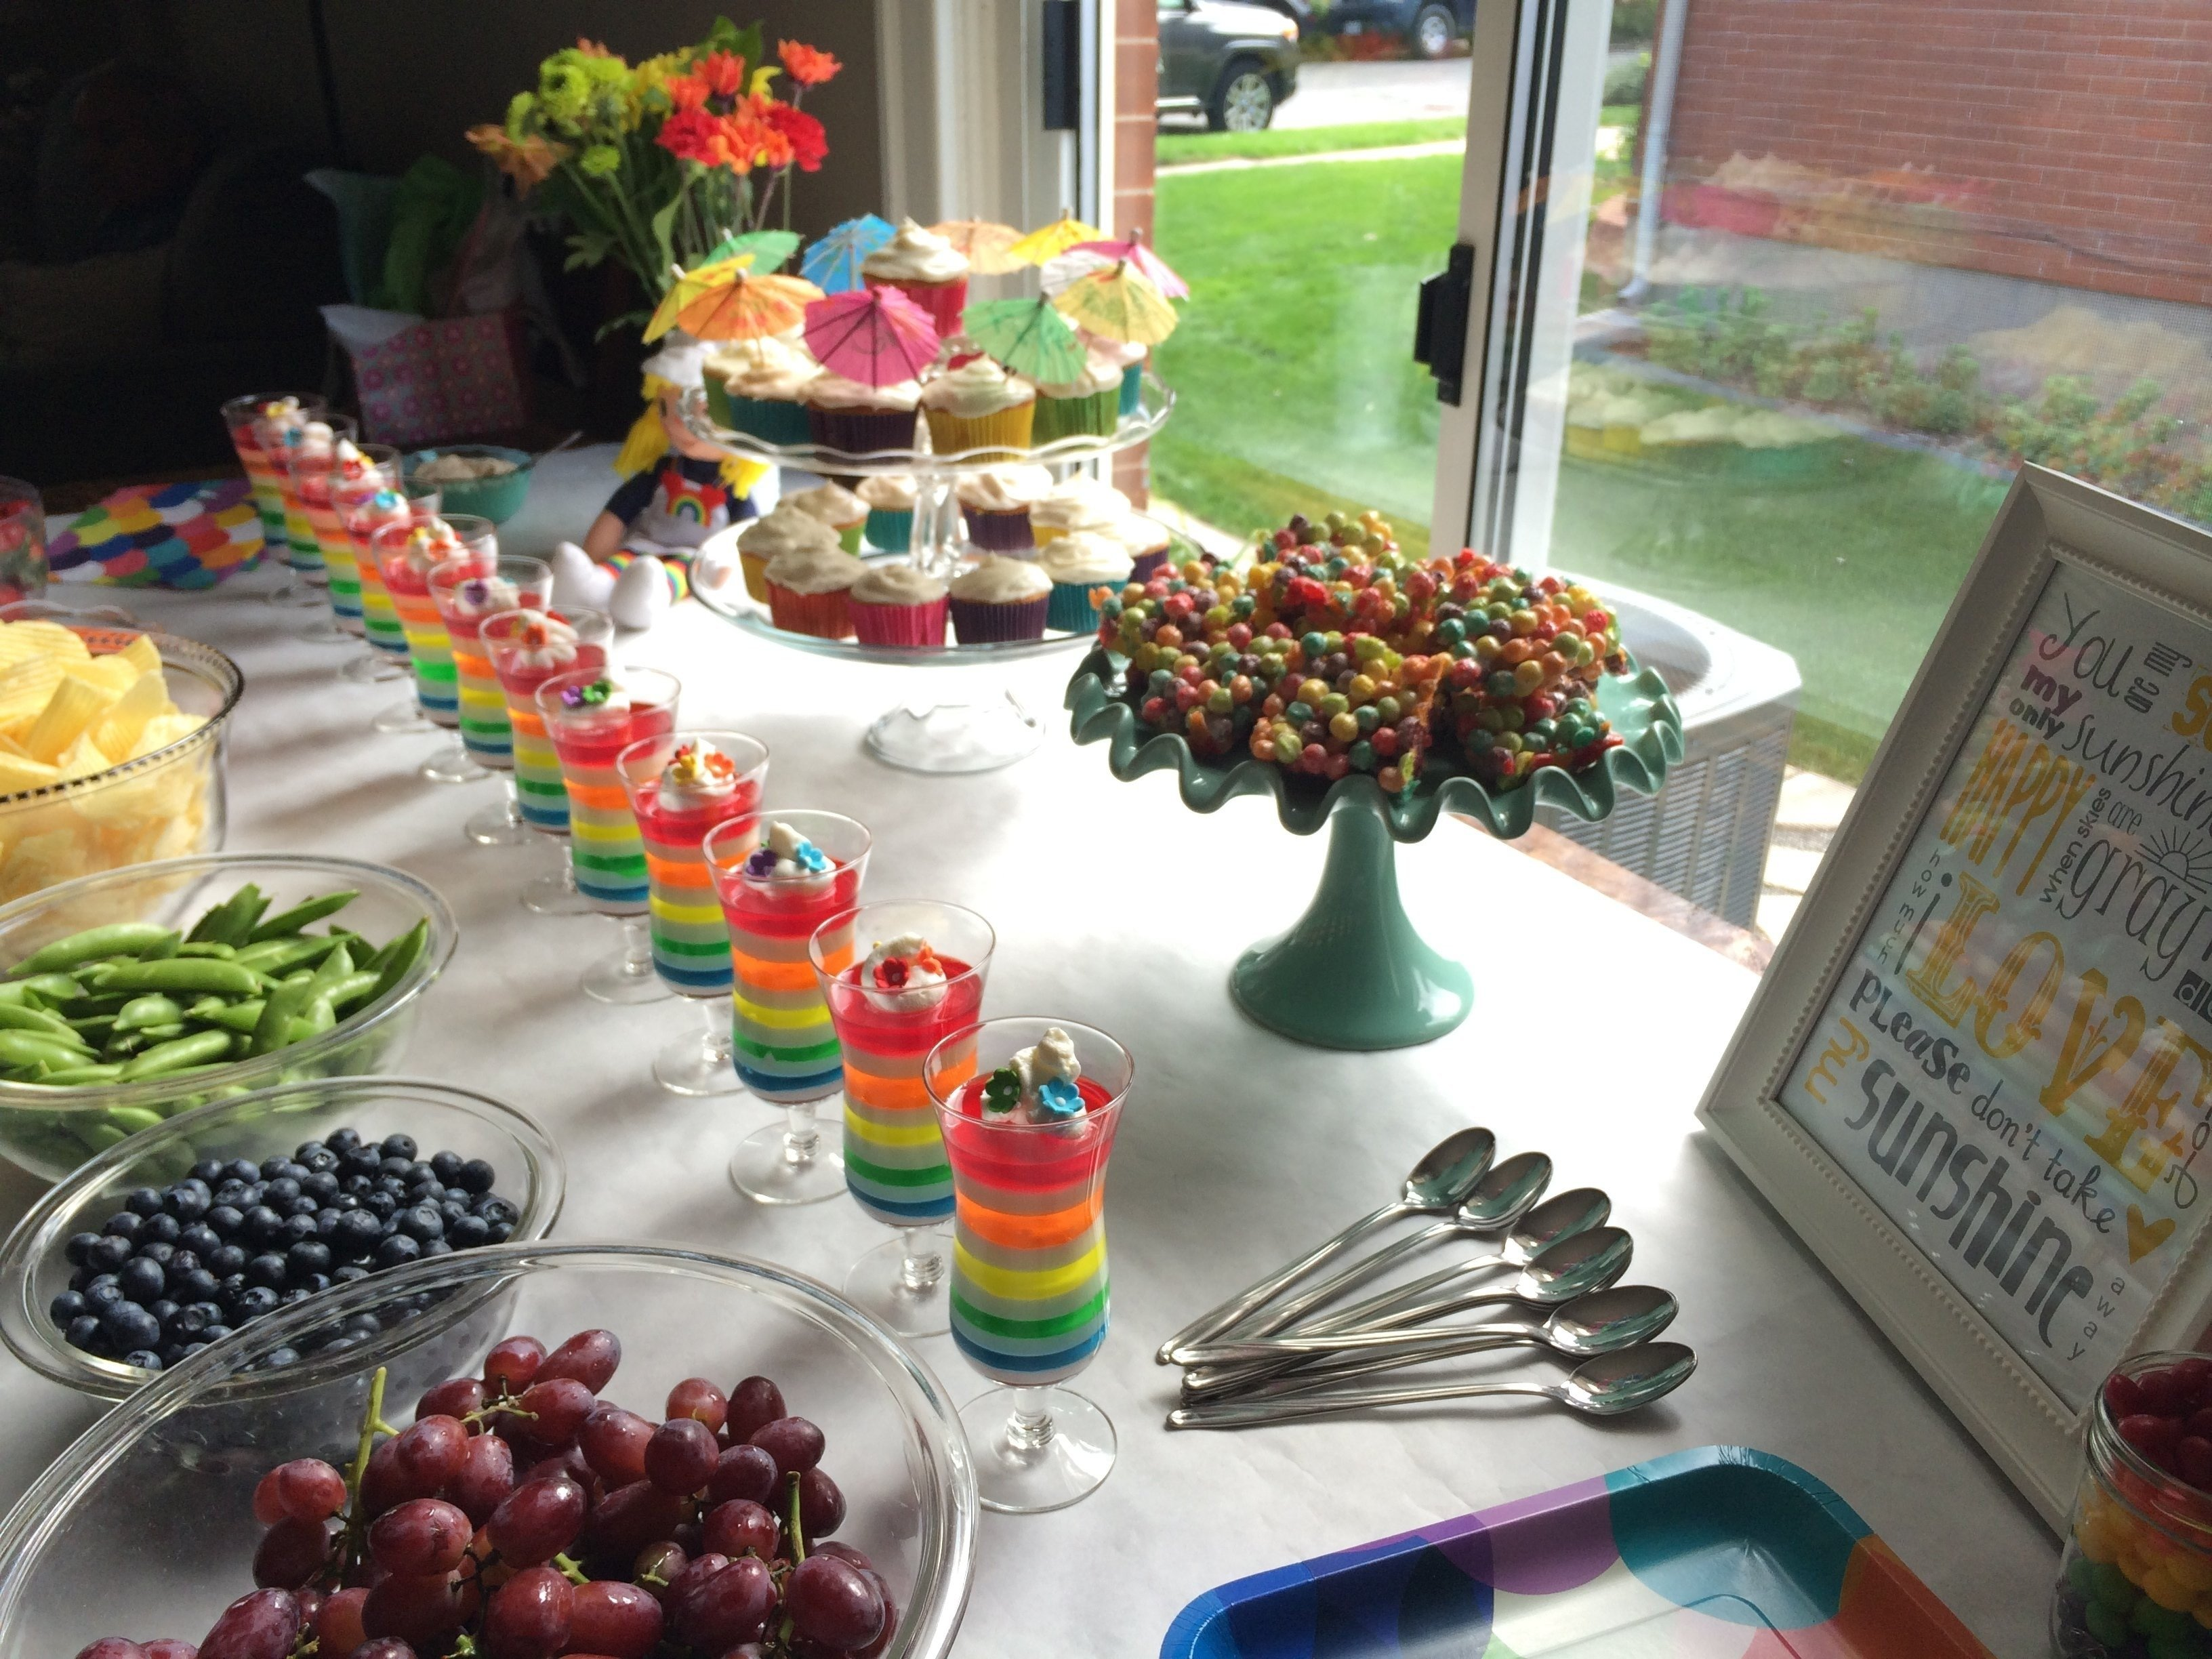 10 Most Recommended 5 Year Birthday Party Ideas 5 year old little girl birthday party ideas birthday cakes 2020